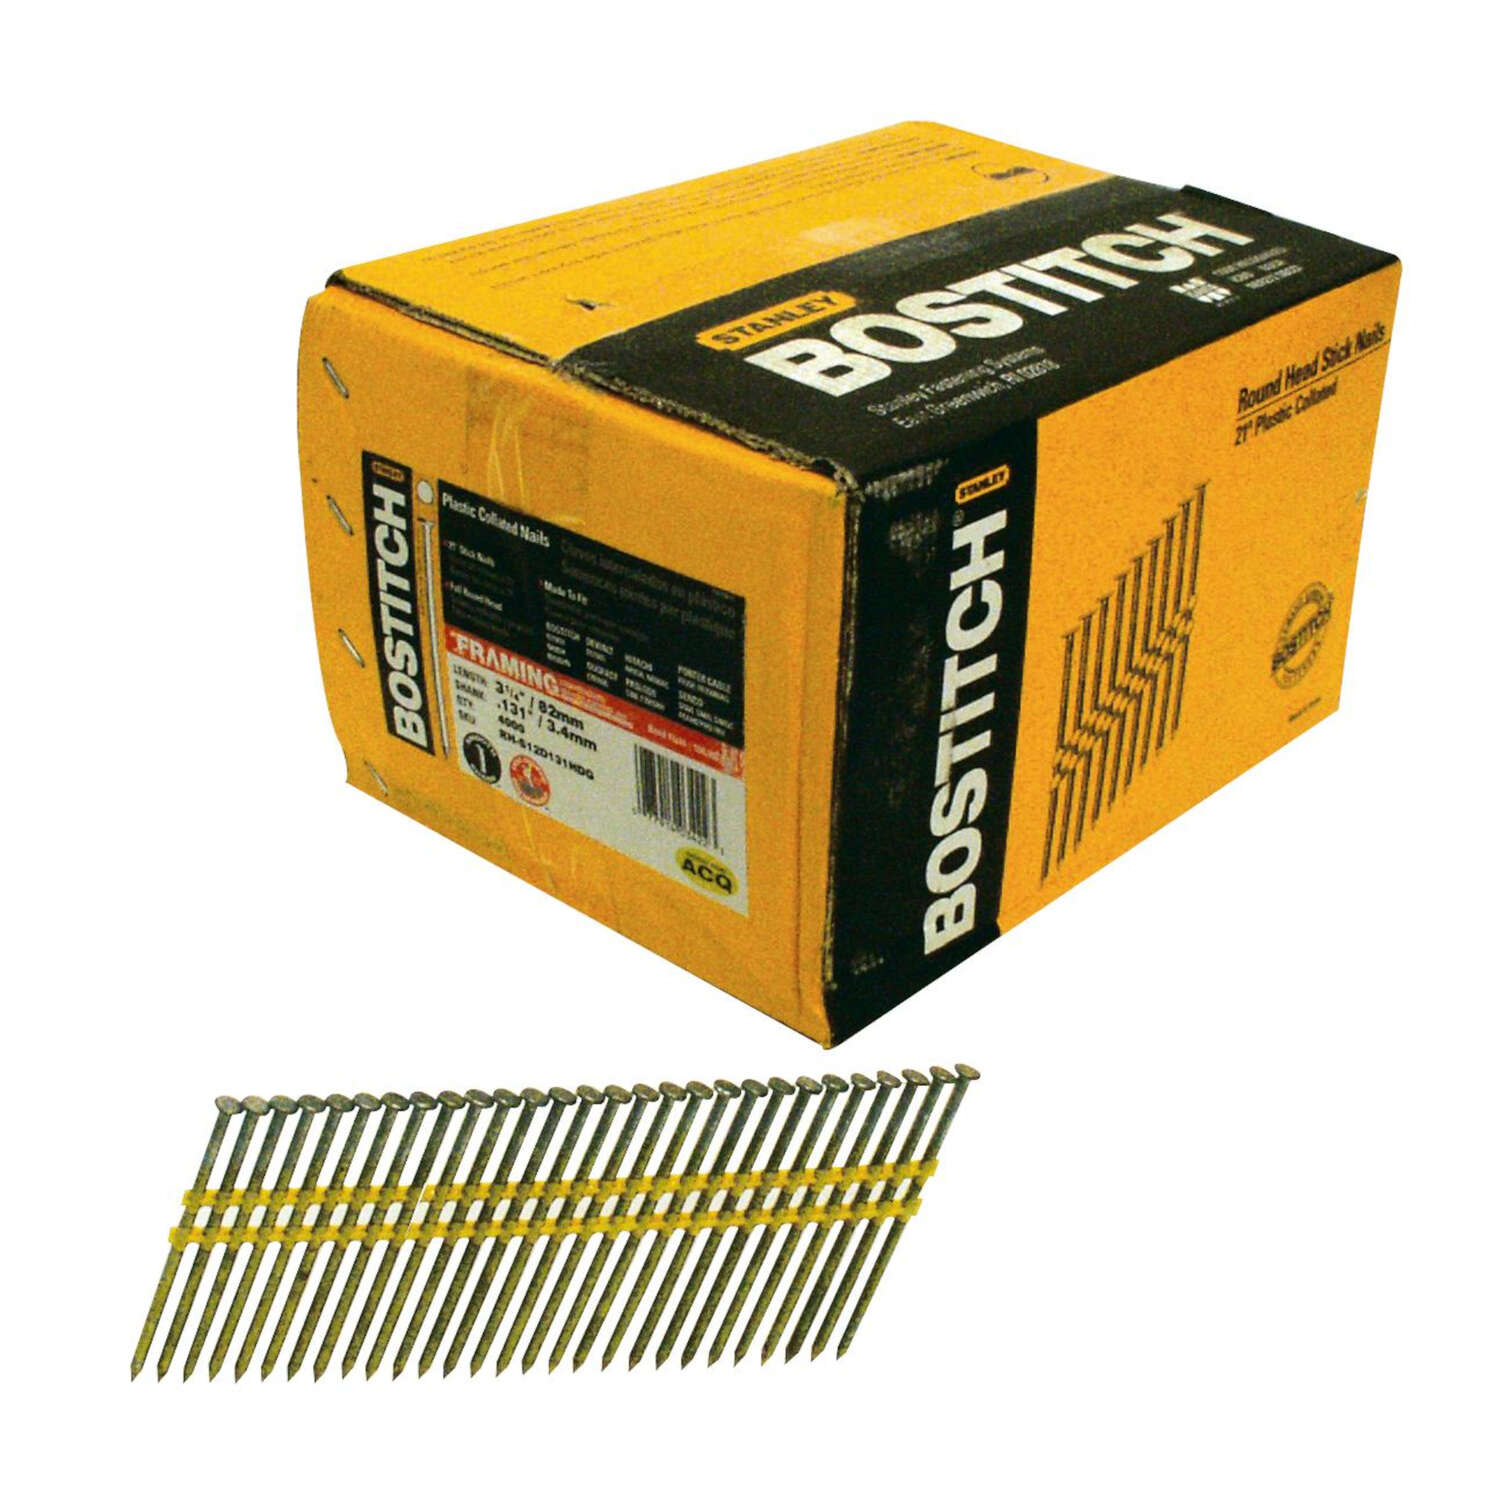 Bostitch 3-1/4 in. Angled Strip Framing Nails 21 deg. Smooth Shank 4,000 pk